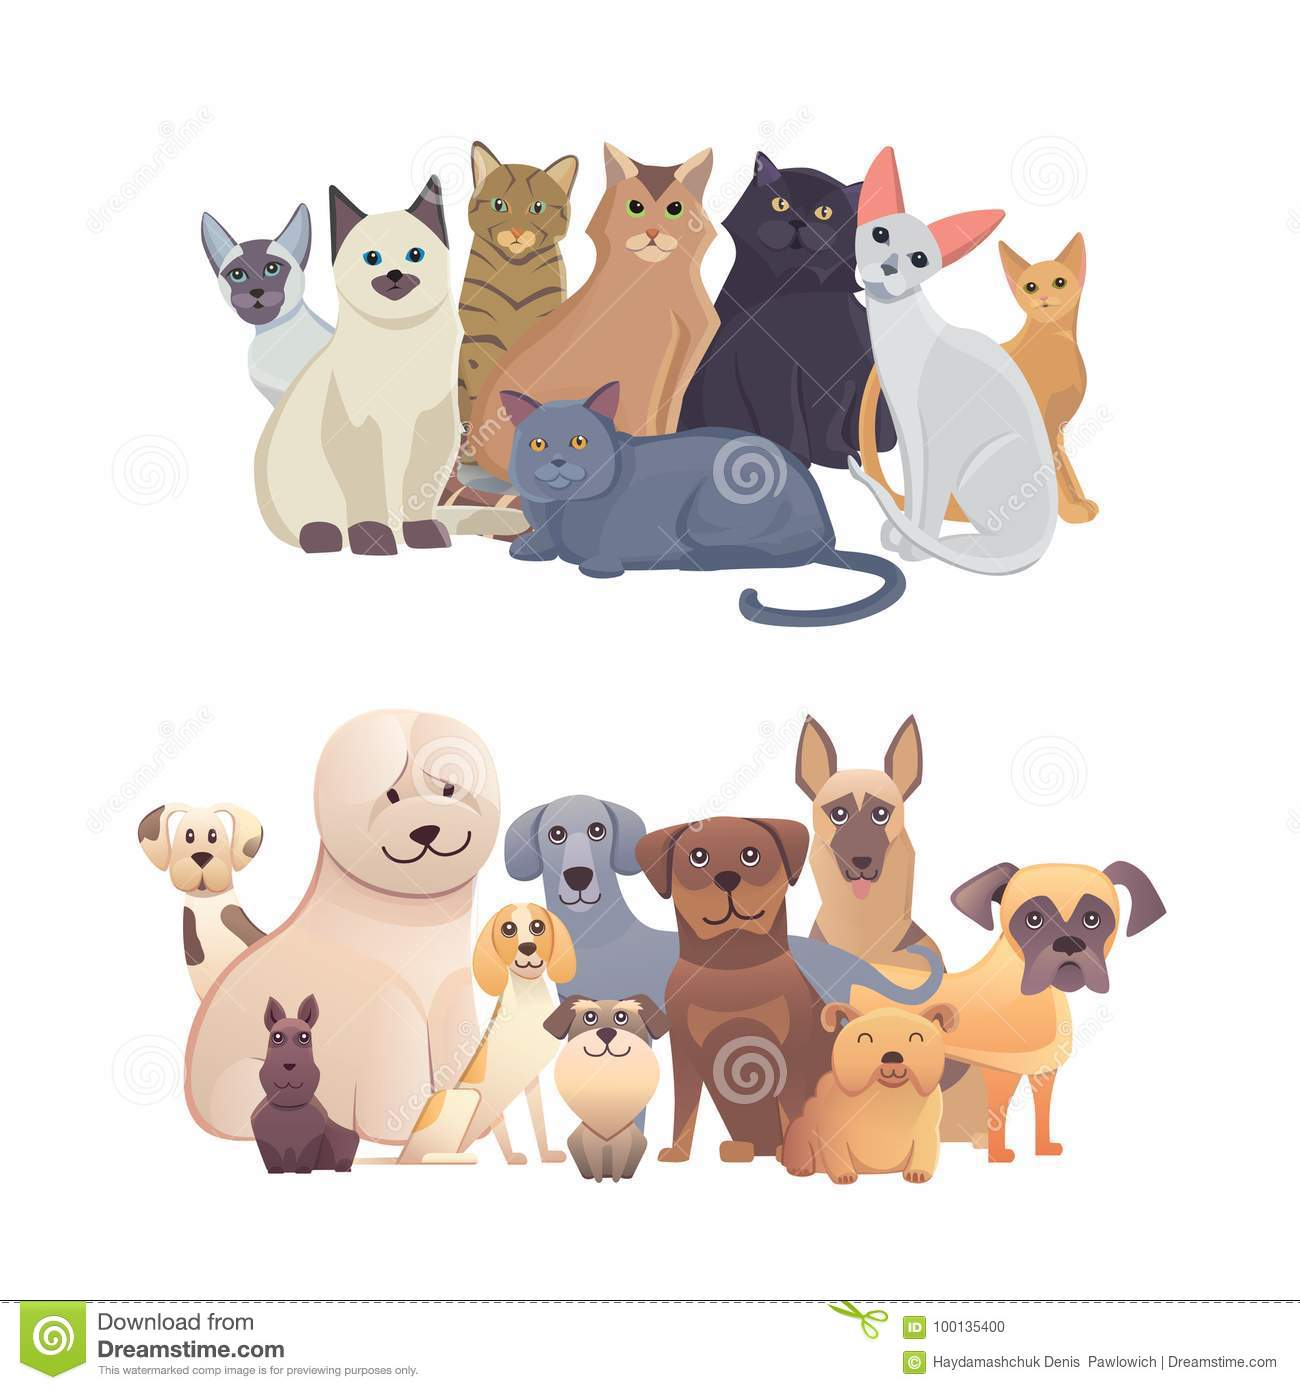 Cats and dogs border set, front view. Pets collection of cartoon illustrations